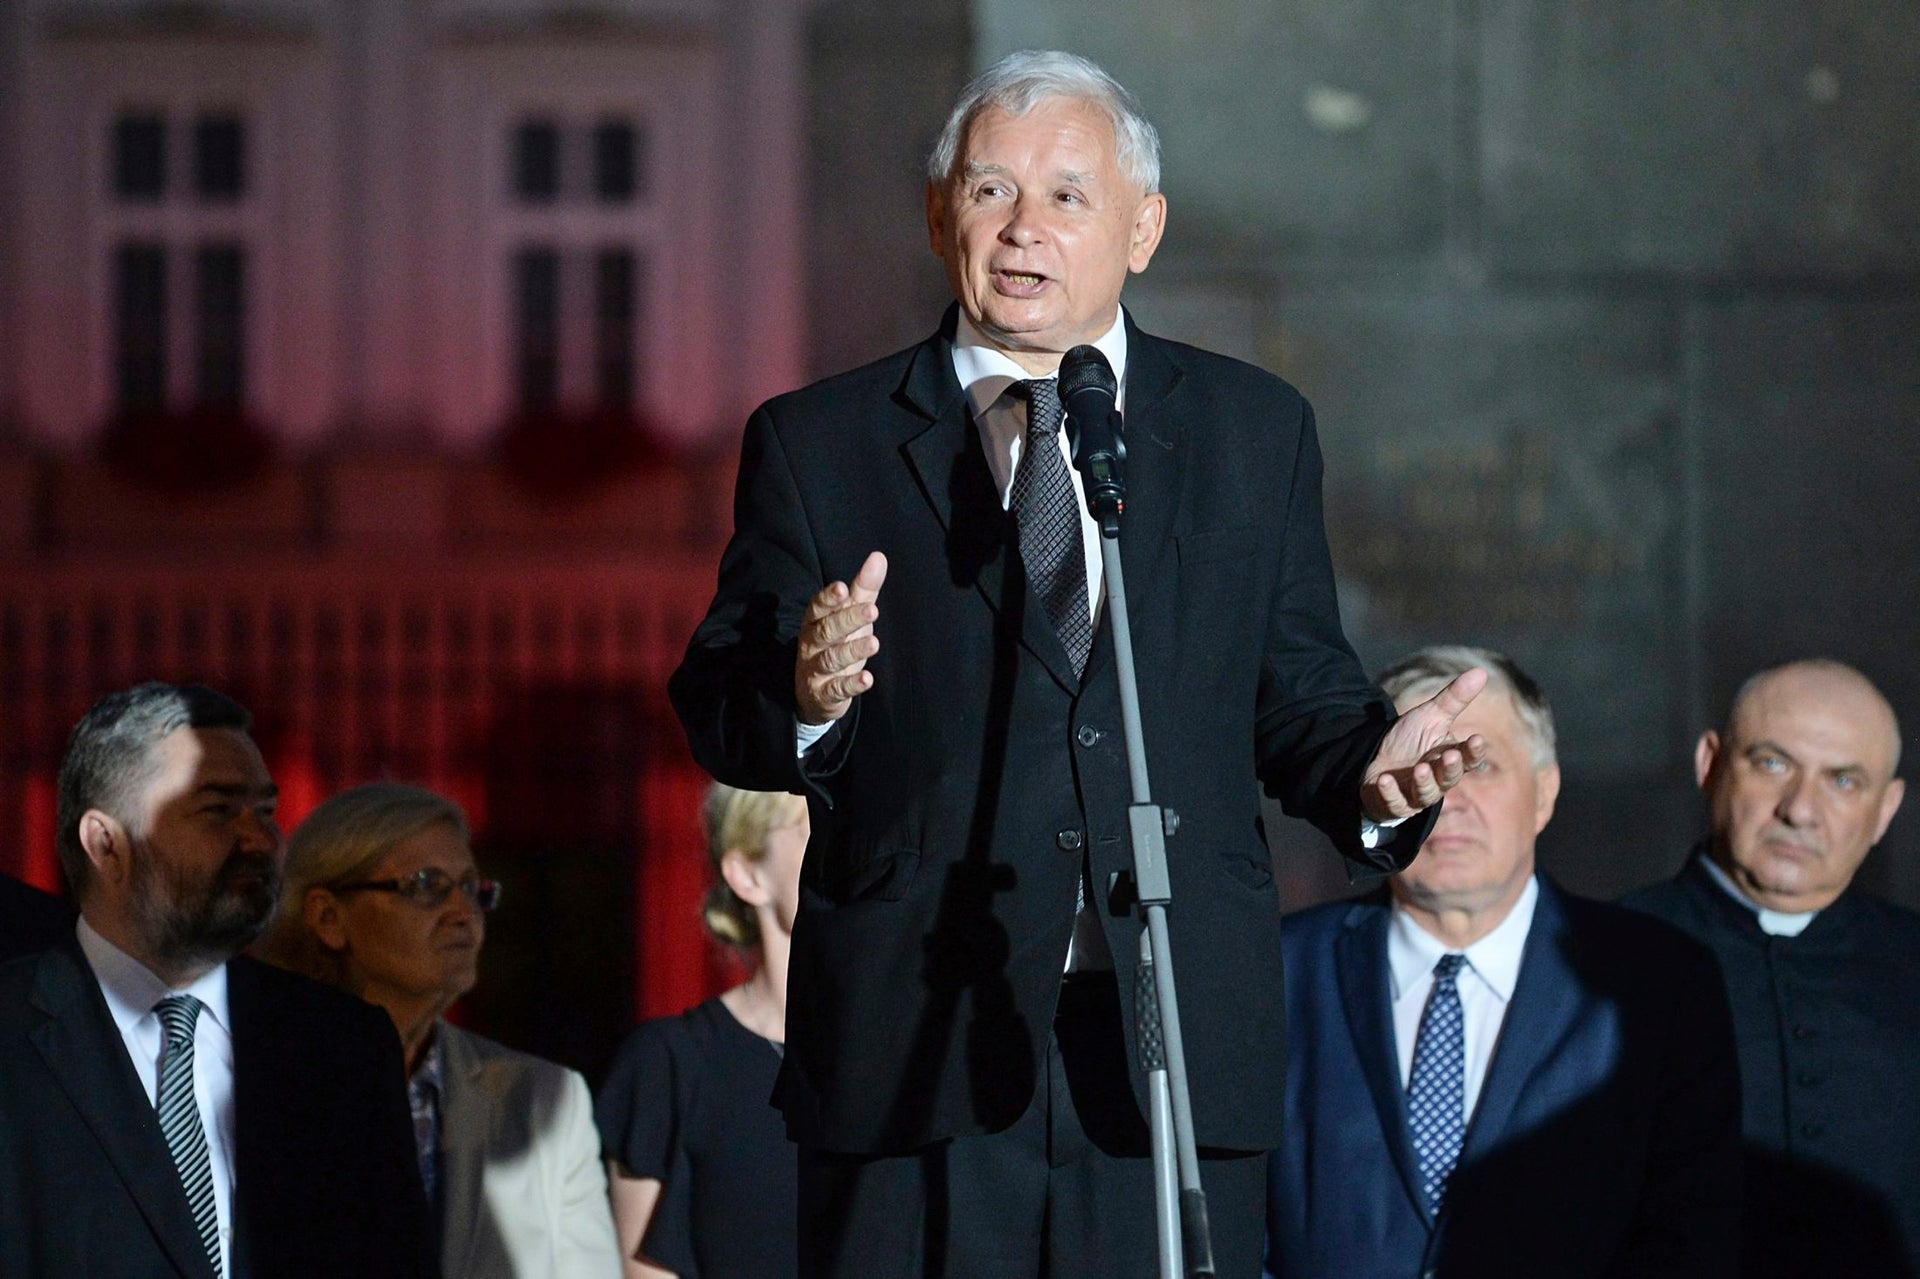 Jaroslaw Kaczynski, leader of the now-ruling Law and Justice party, speaks in front of the Presidential Palace, in Warsaw, Poland, Aug. 10, 2017.